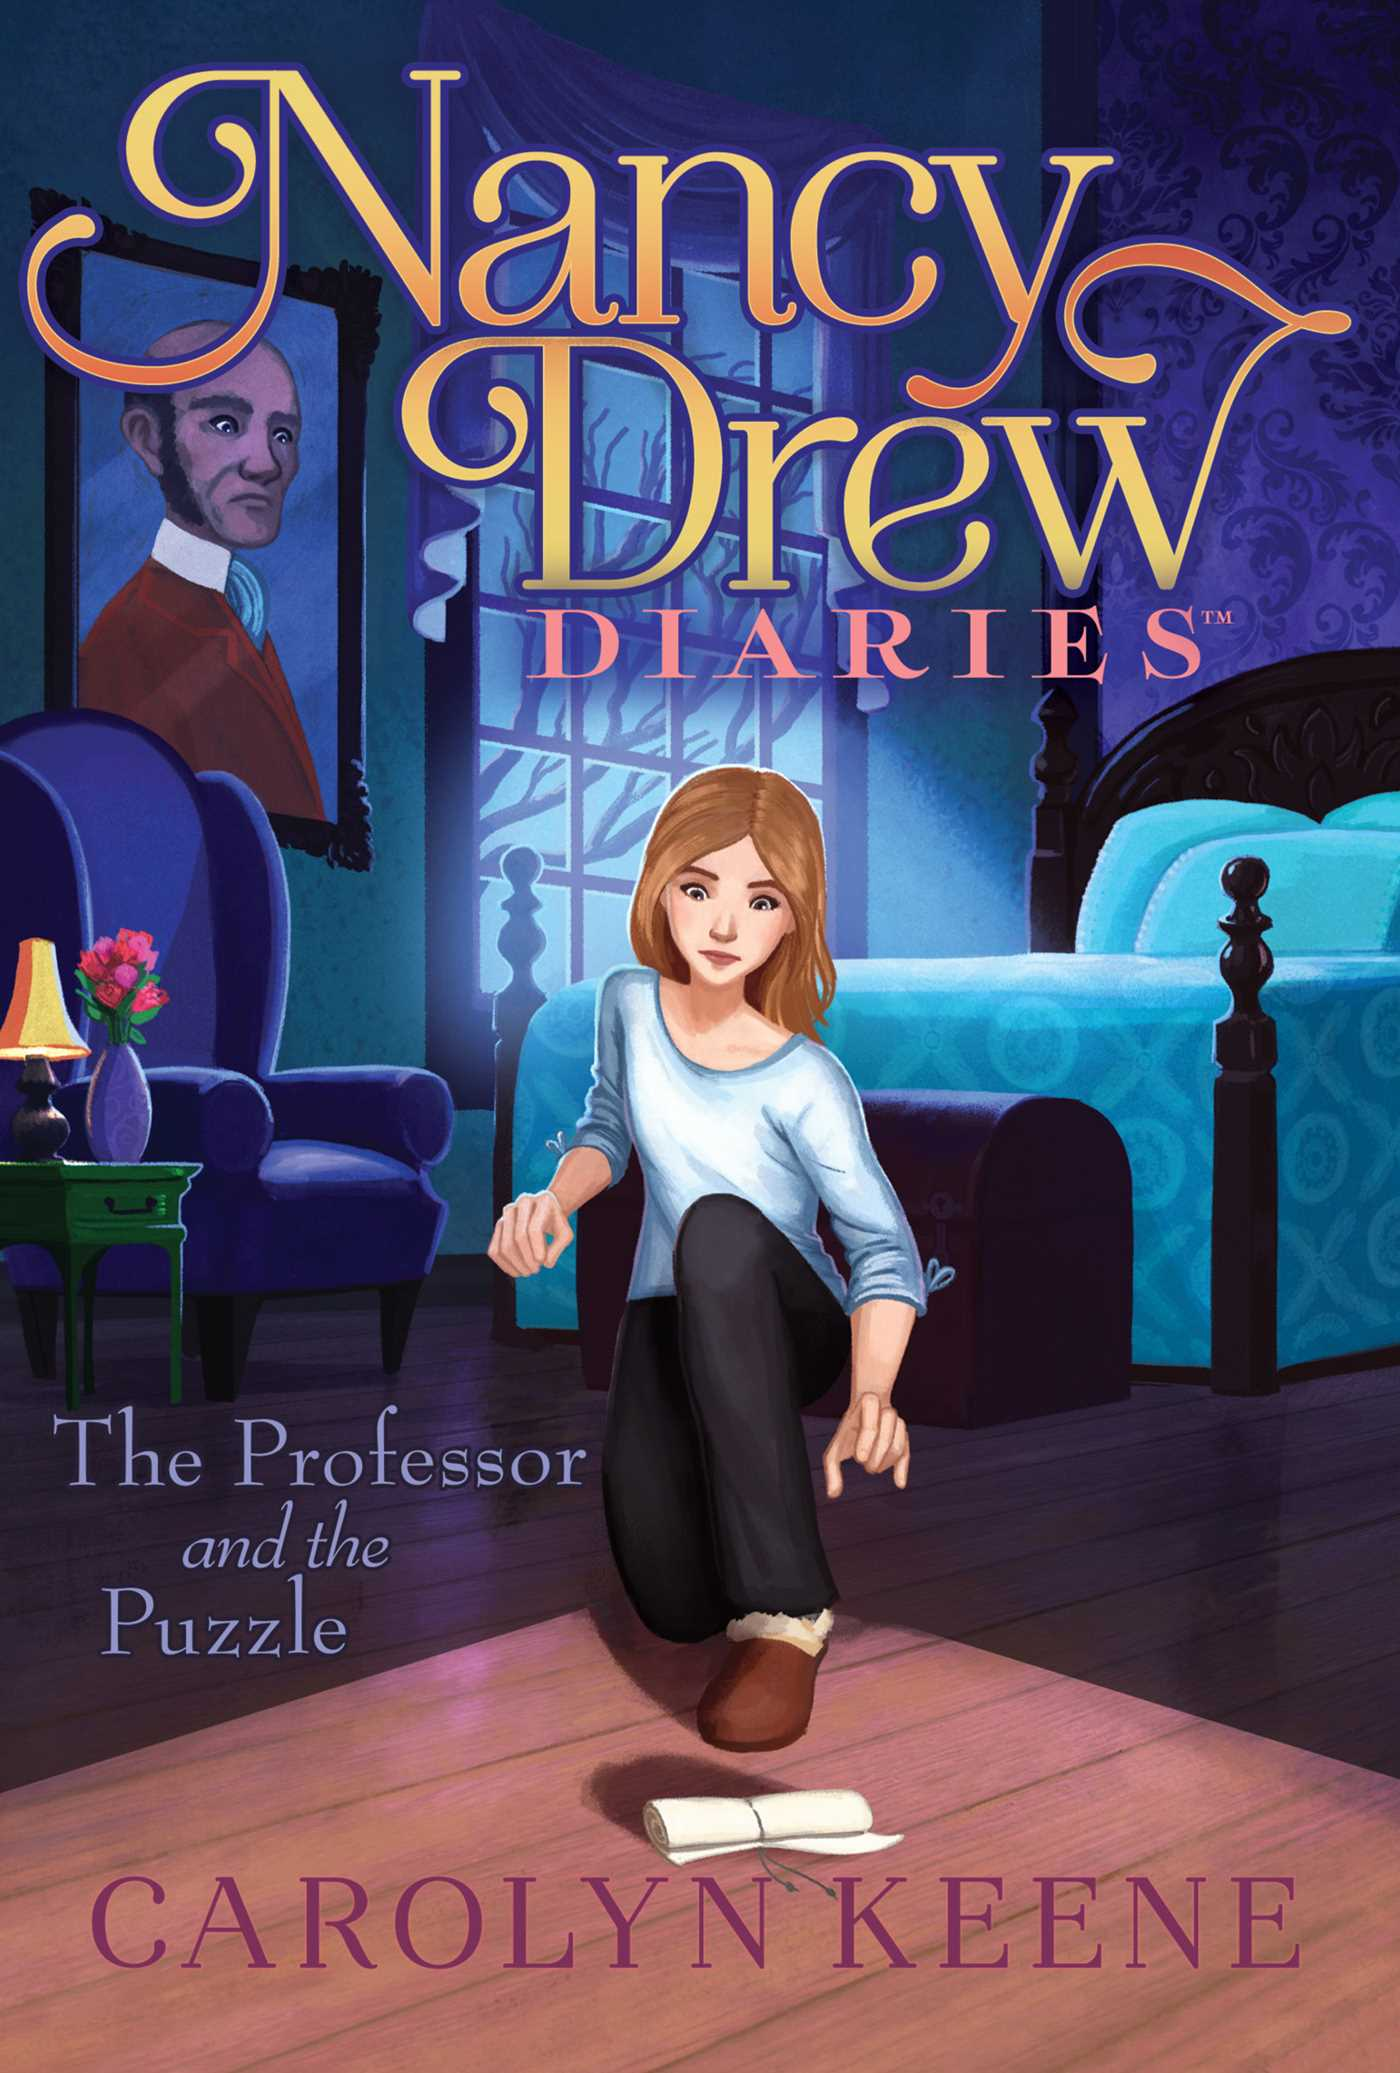 The Professor and the Puzzle